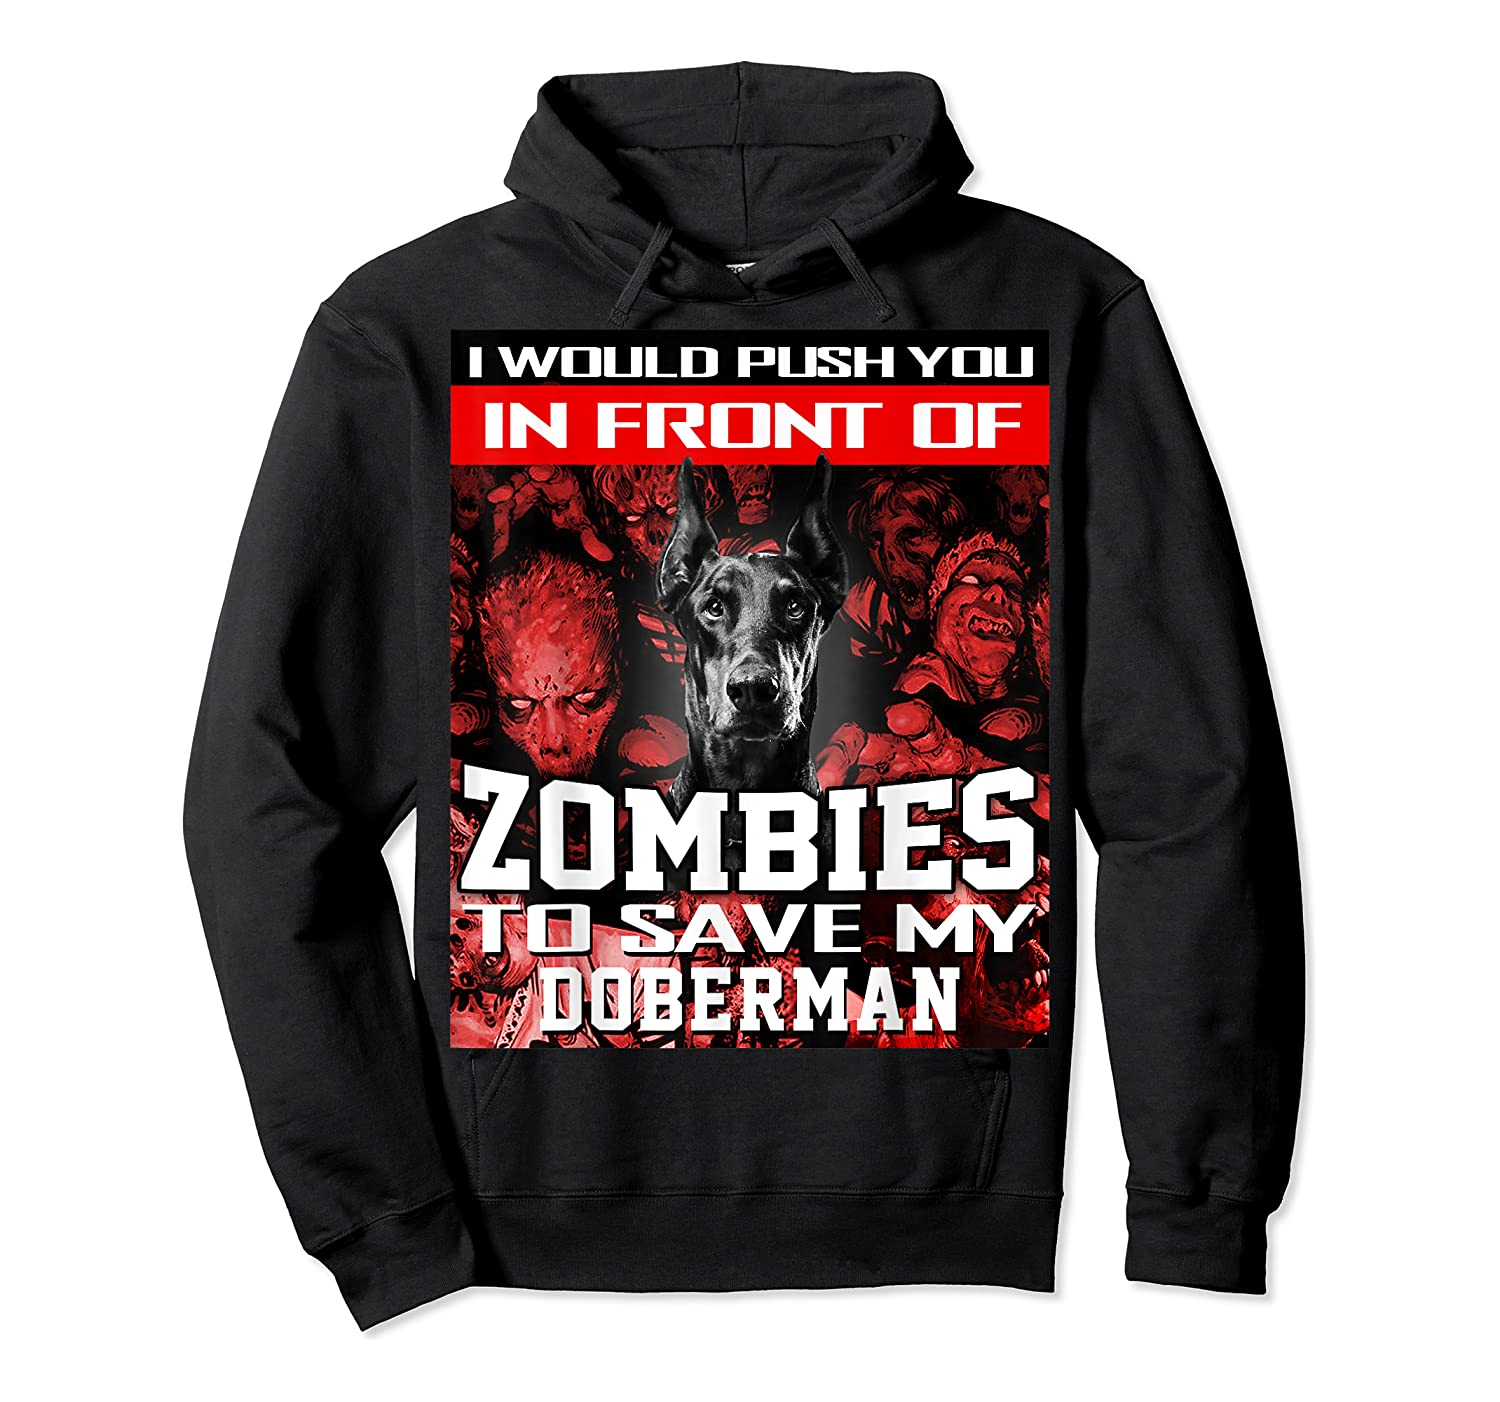 In Front Of Zombies To Save My Doberman Halloween Saying T-shirt Unisex Pullover Hoodie